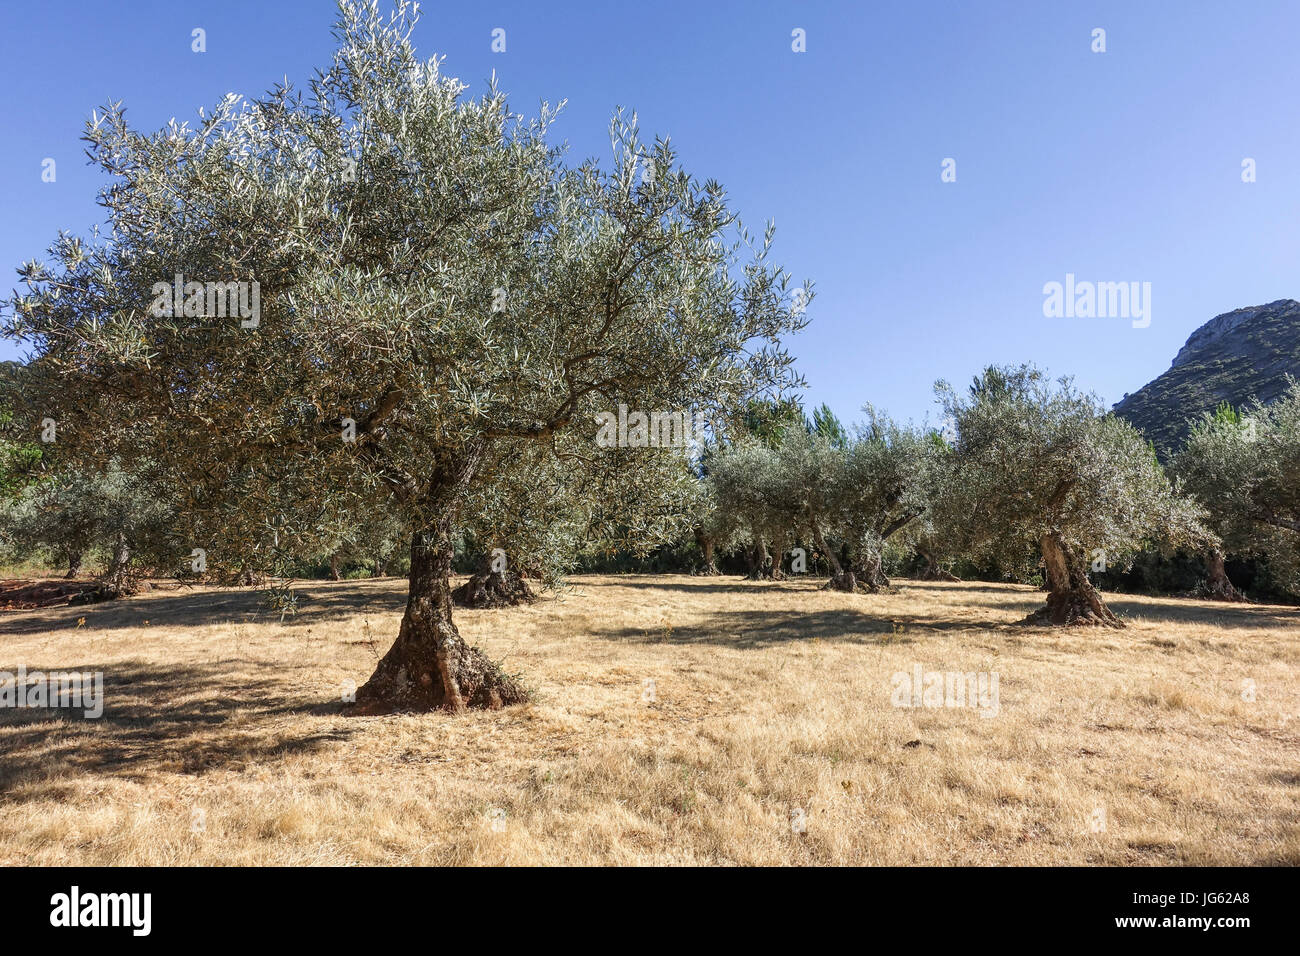 dry-orchard-of-olive-trees-mediterranean